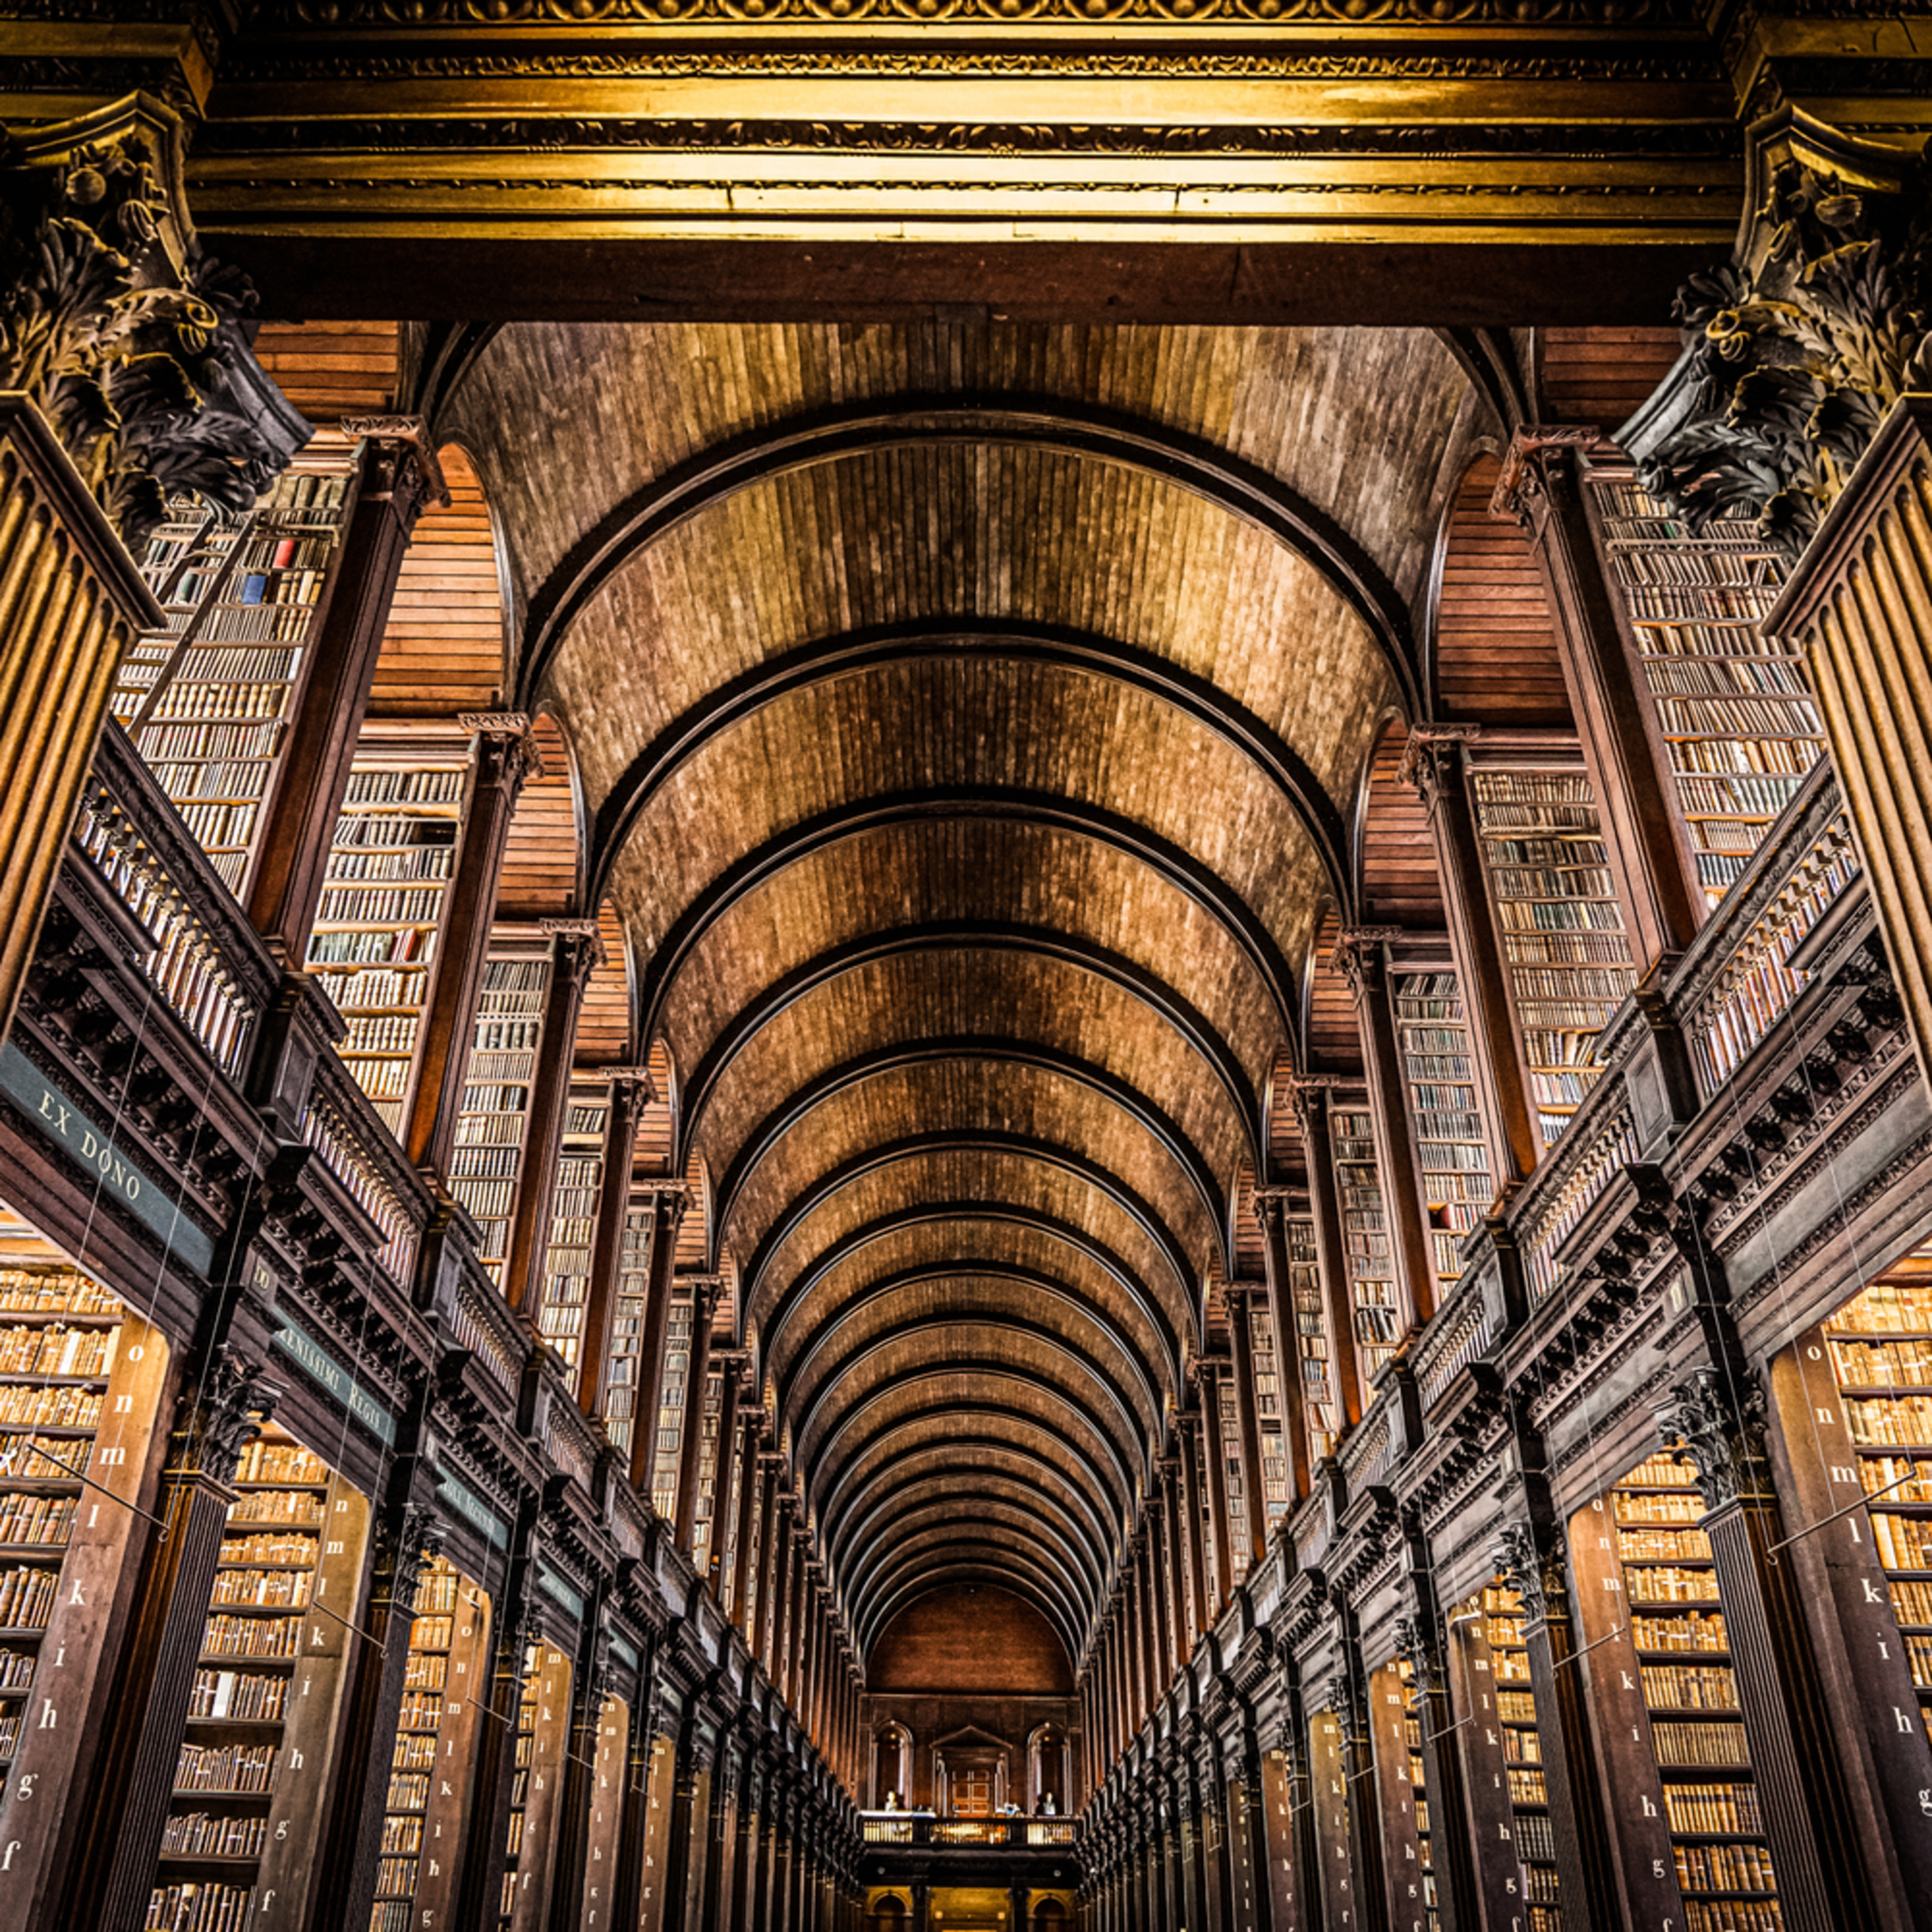 The long room at trinity college ndtuyv